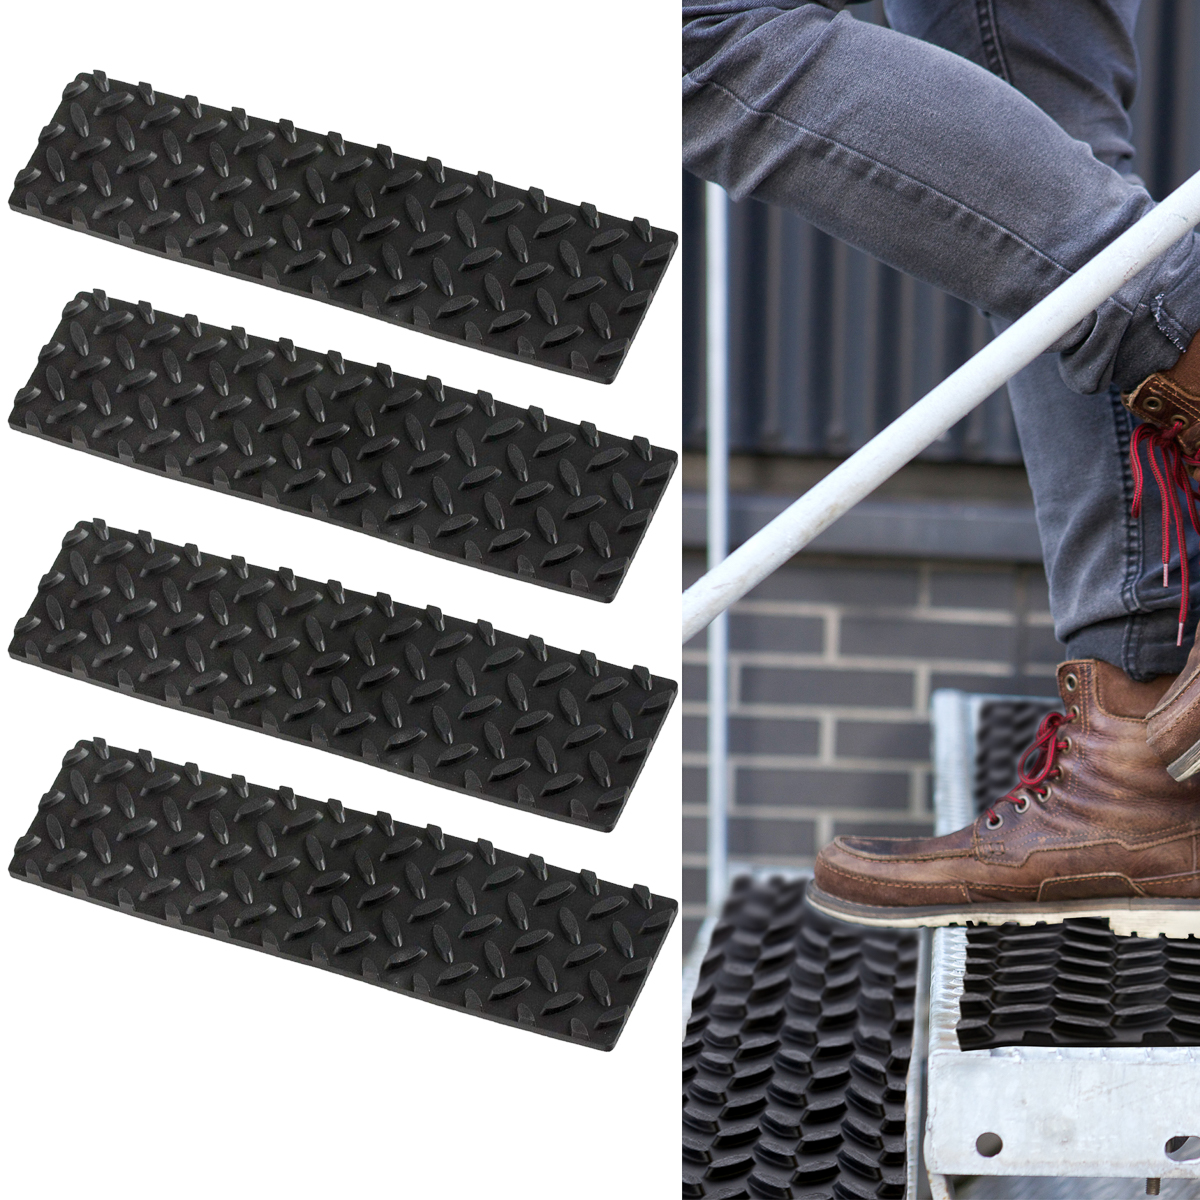 Keeper (4 Pack) Safety Step Non Slip Stair Treads For Indoor U0026 Outdoor  Stairs Rubber Tread Adhesive Strips